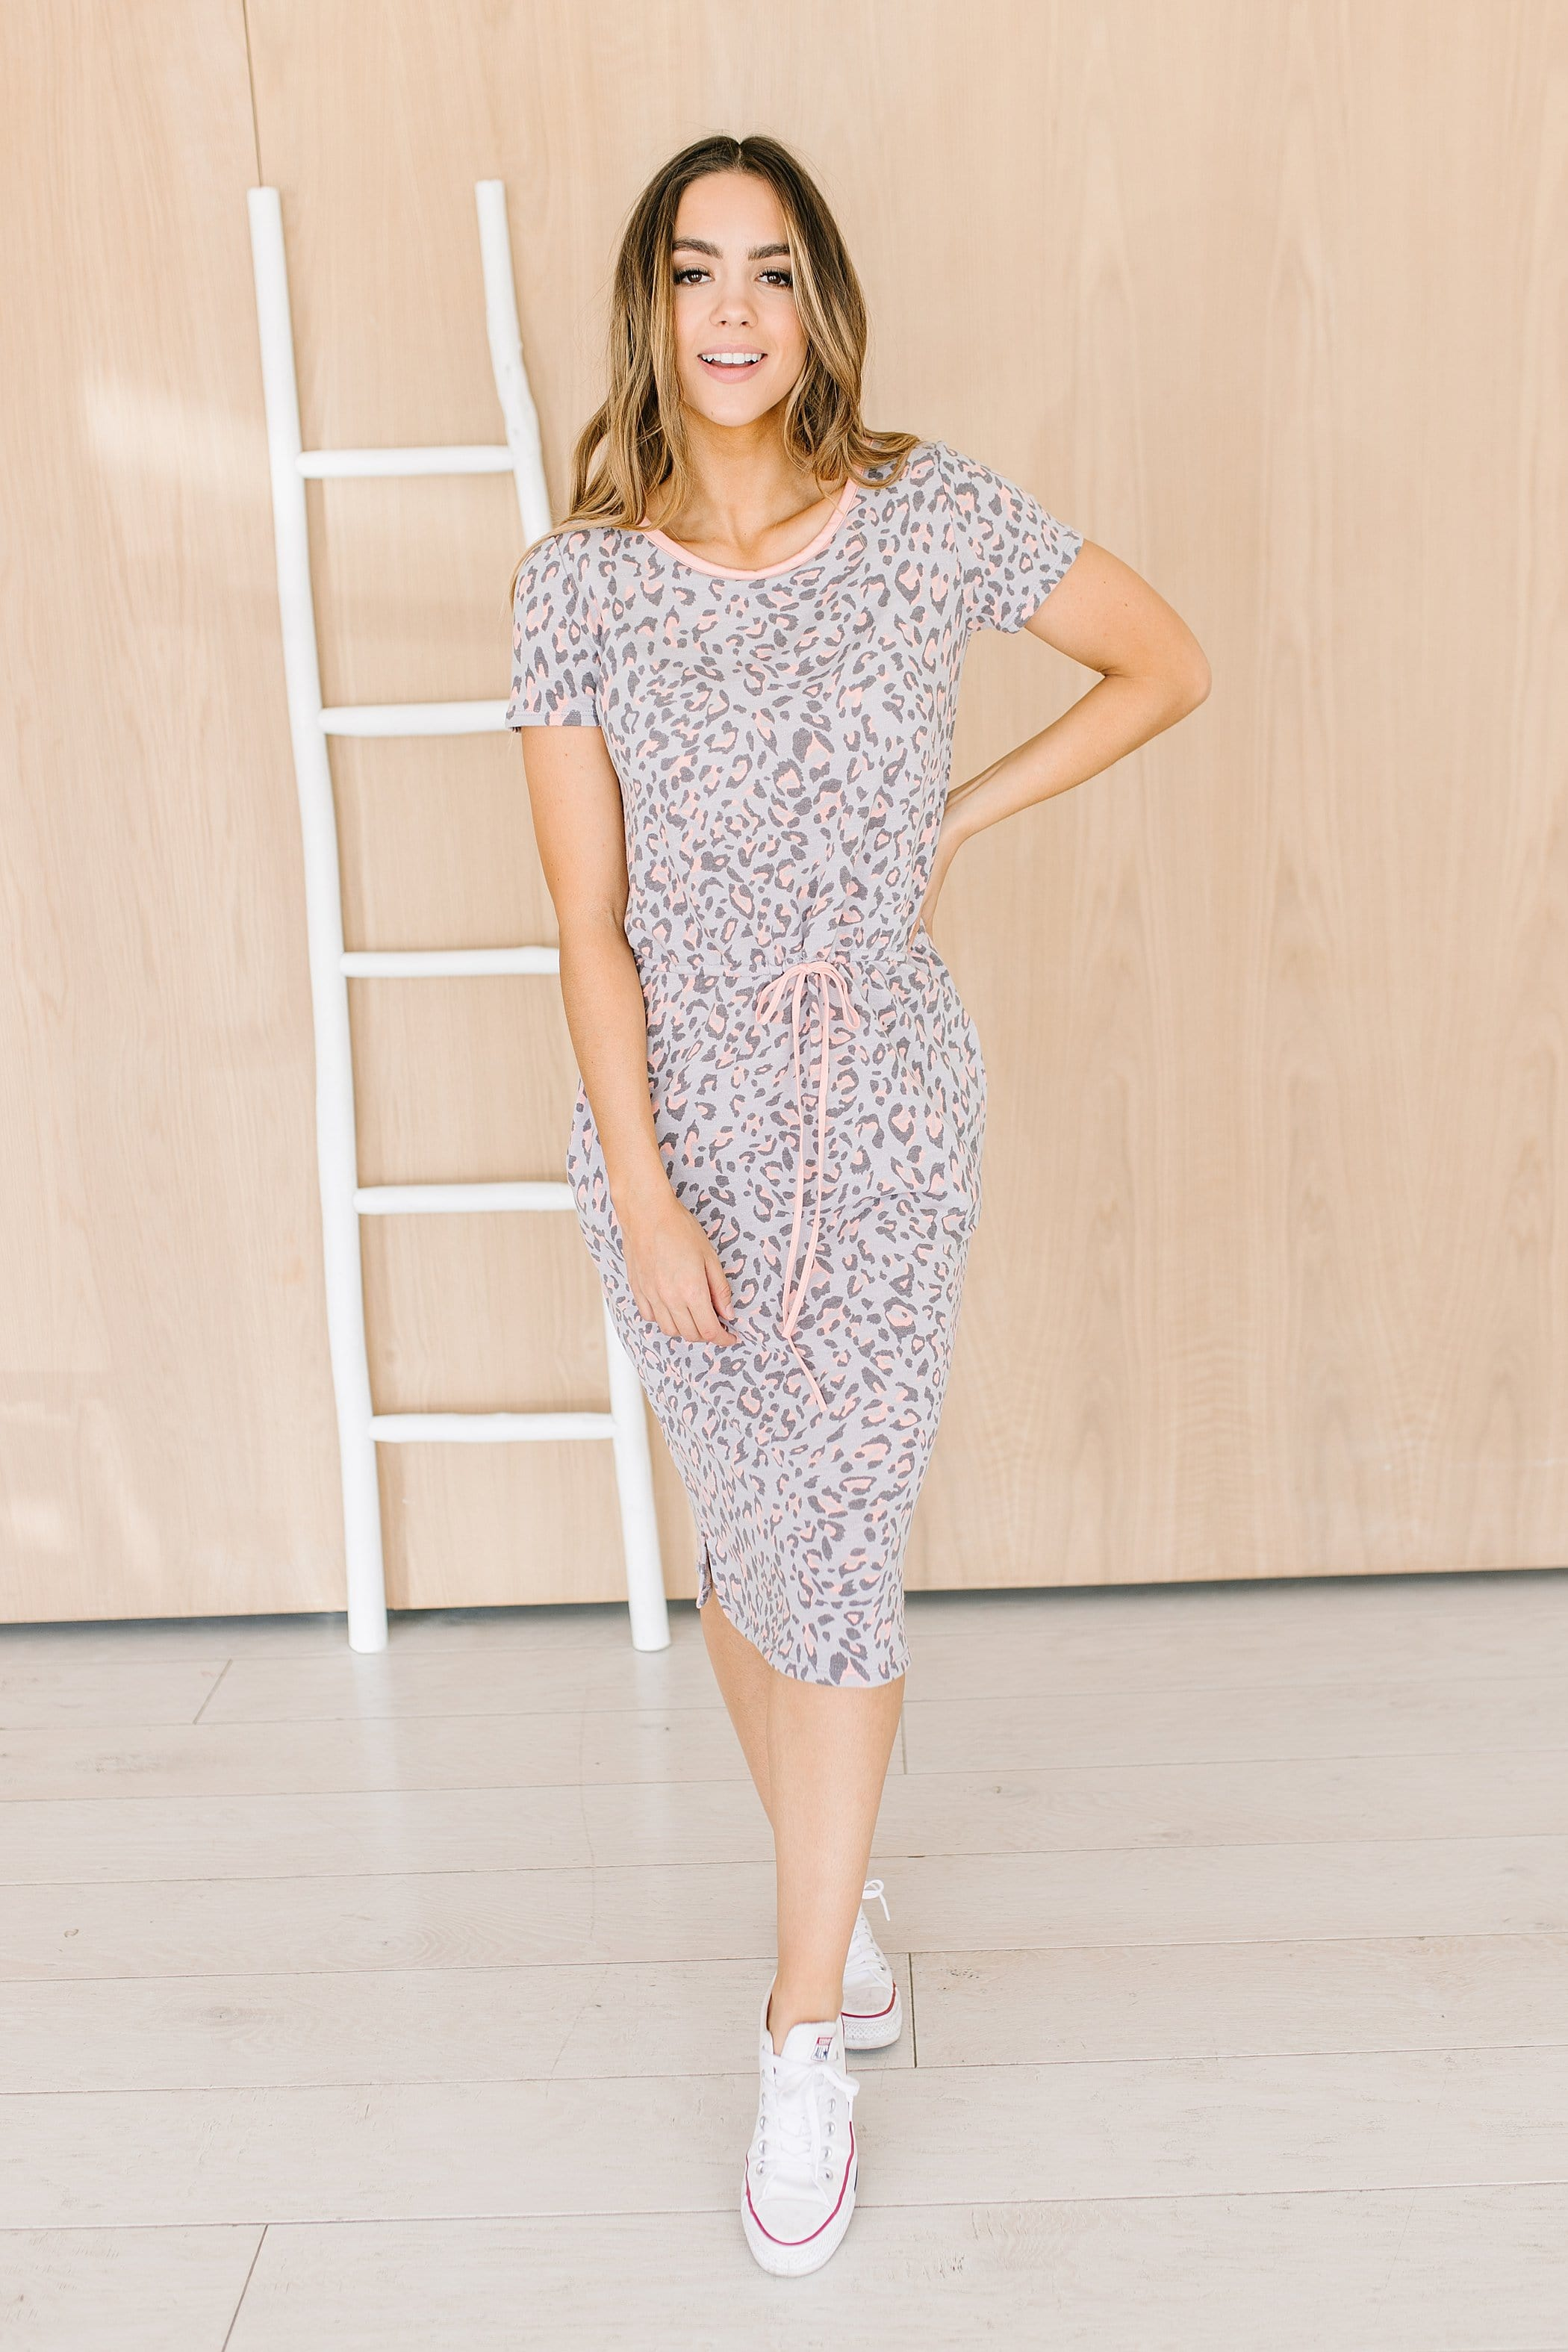 The Kendi Midi Dress in Animal Print